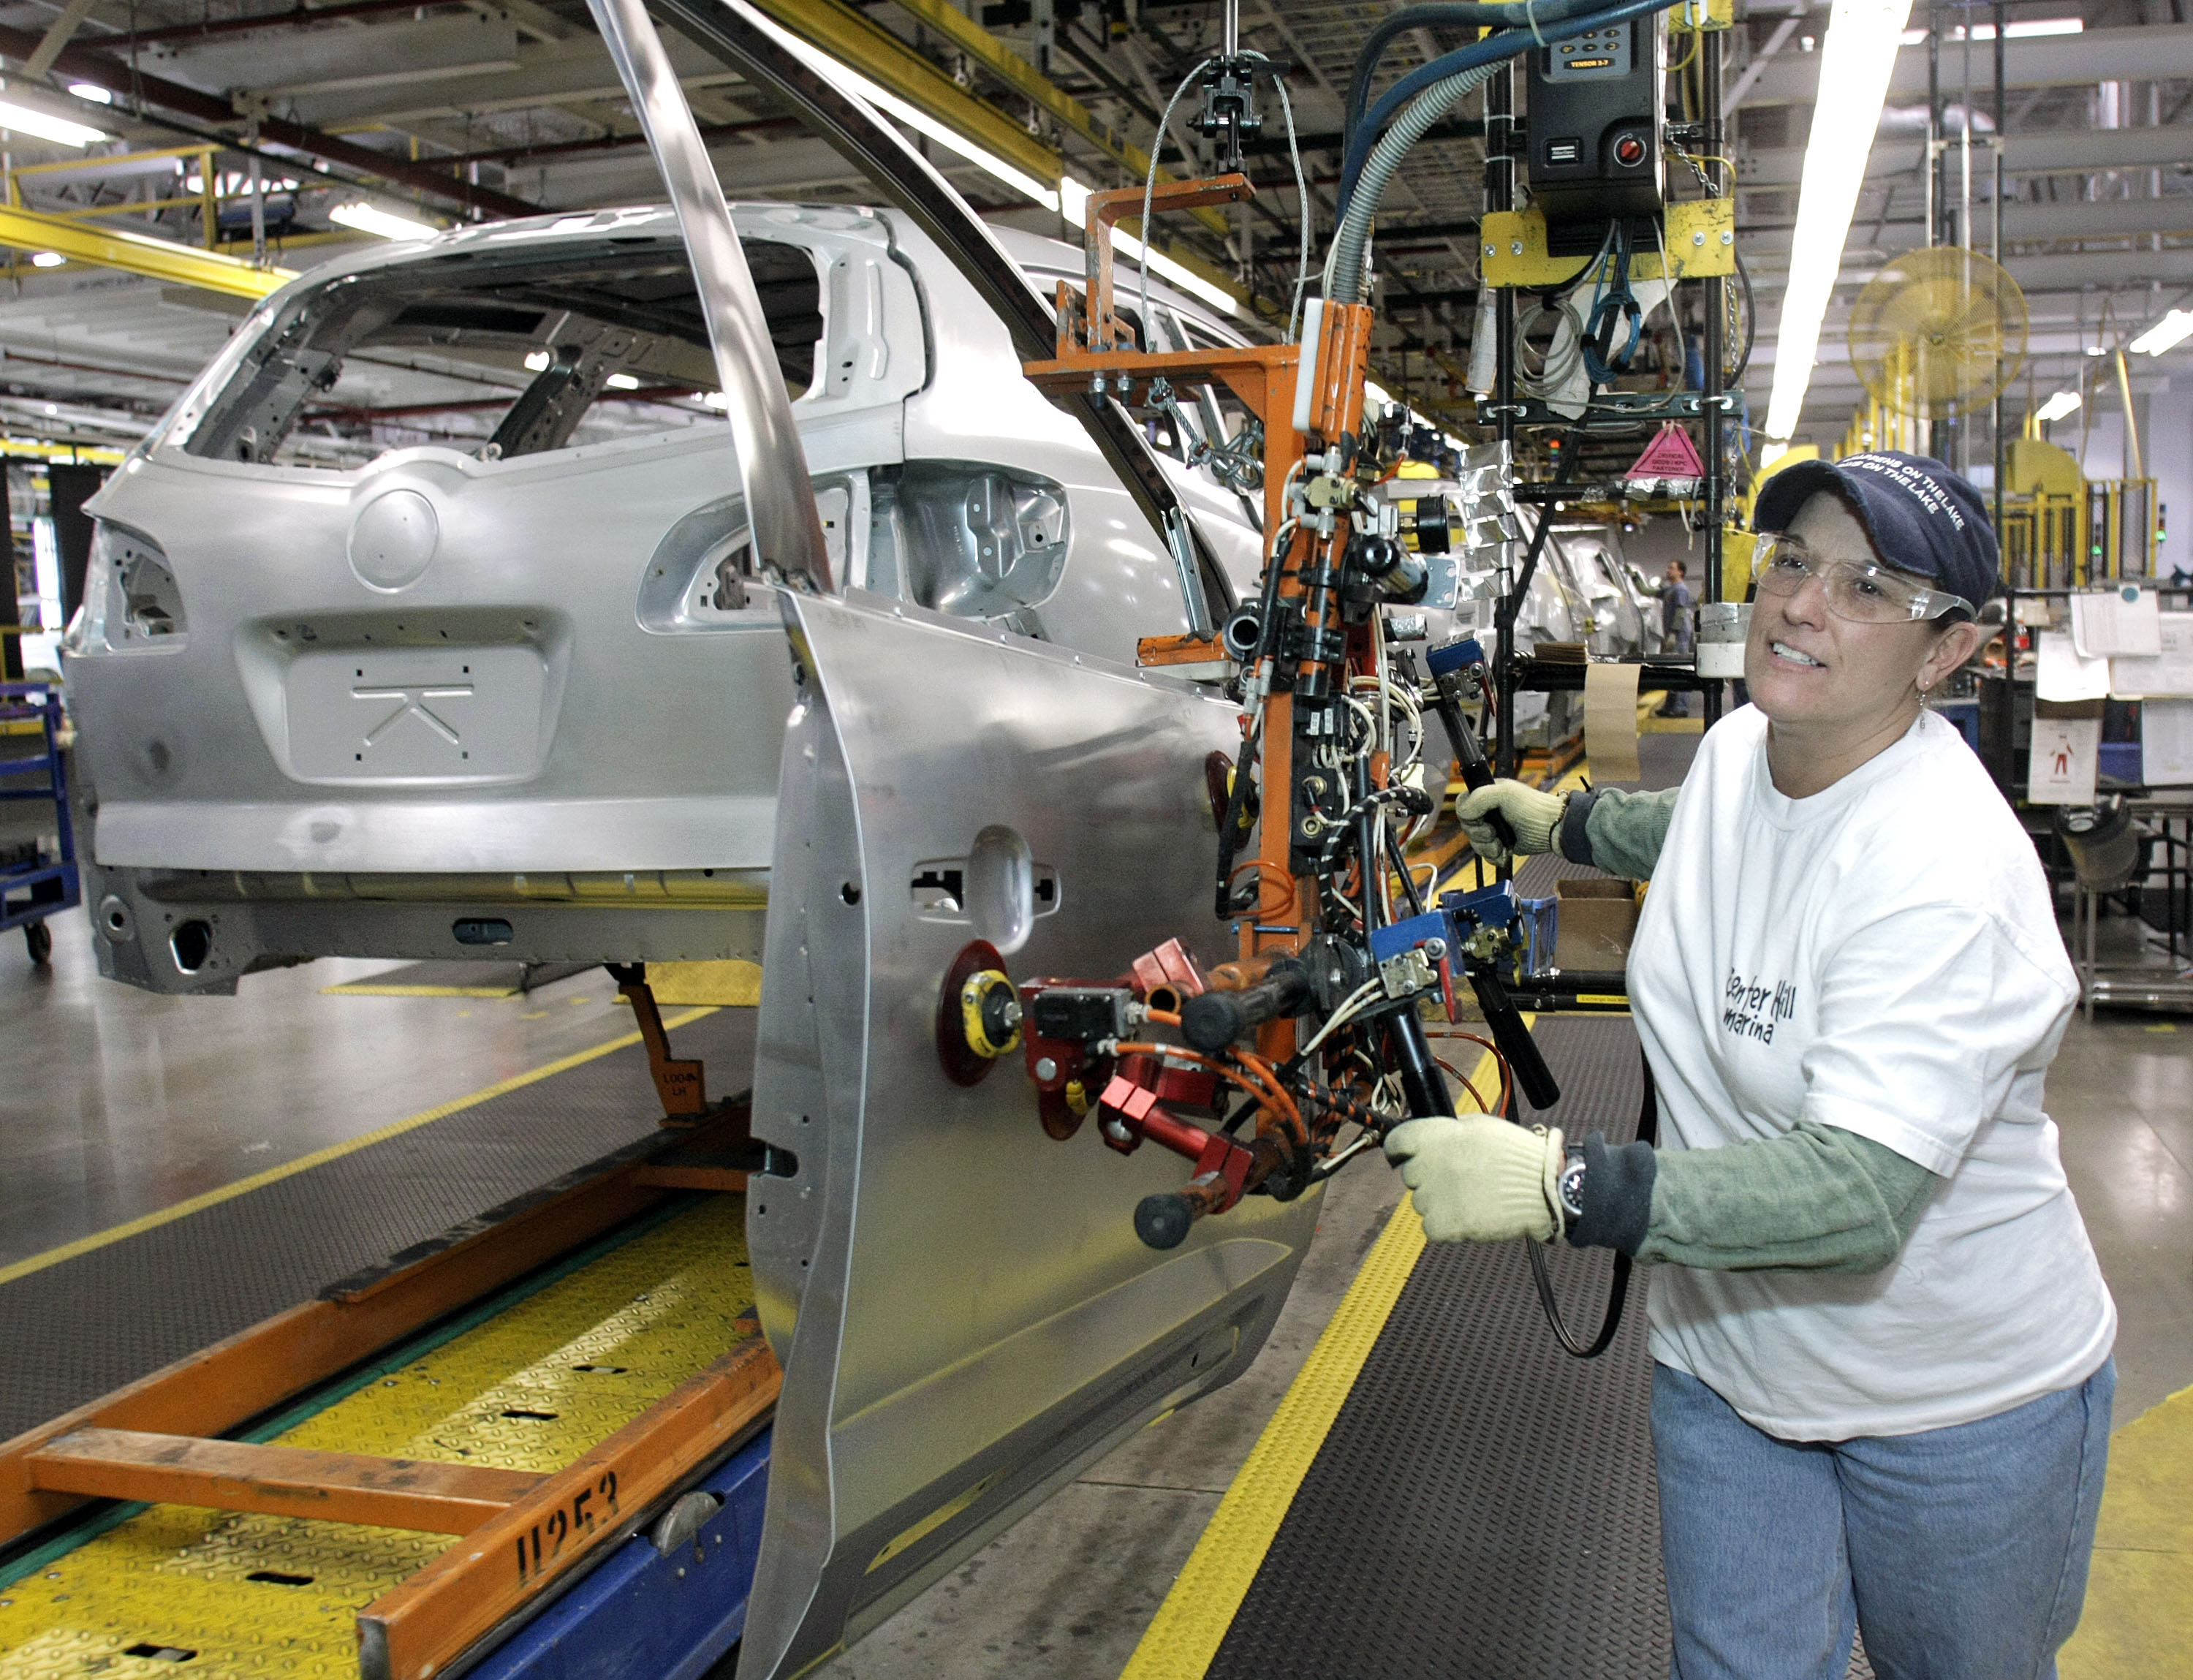 A worker installs a door on a GM crossover SUV as it goes through the assembly line at the General Motors Lansing Delta Township Assembly Plant on March 10, 2010 in Lansing, Michigan. The Delta plant has more than 3,000 workers on two shifts and is expected to add a third shift of 900-1,000 workers in April. The plant produces the Buick Enclave, Chevrolet Traverse, and GMC Acadia crossover SUVs. (Photo by Bill Pugliano/Getty Images)